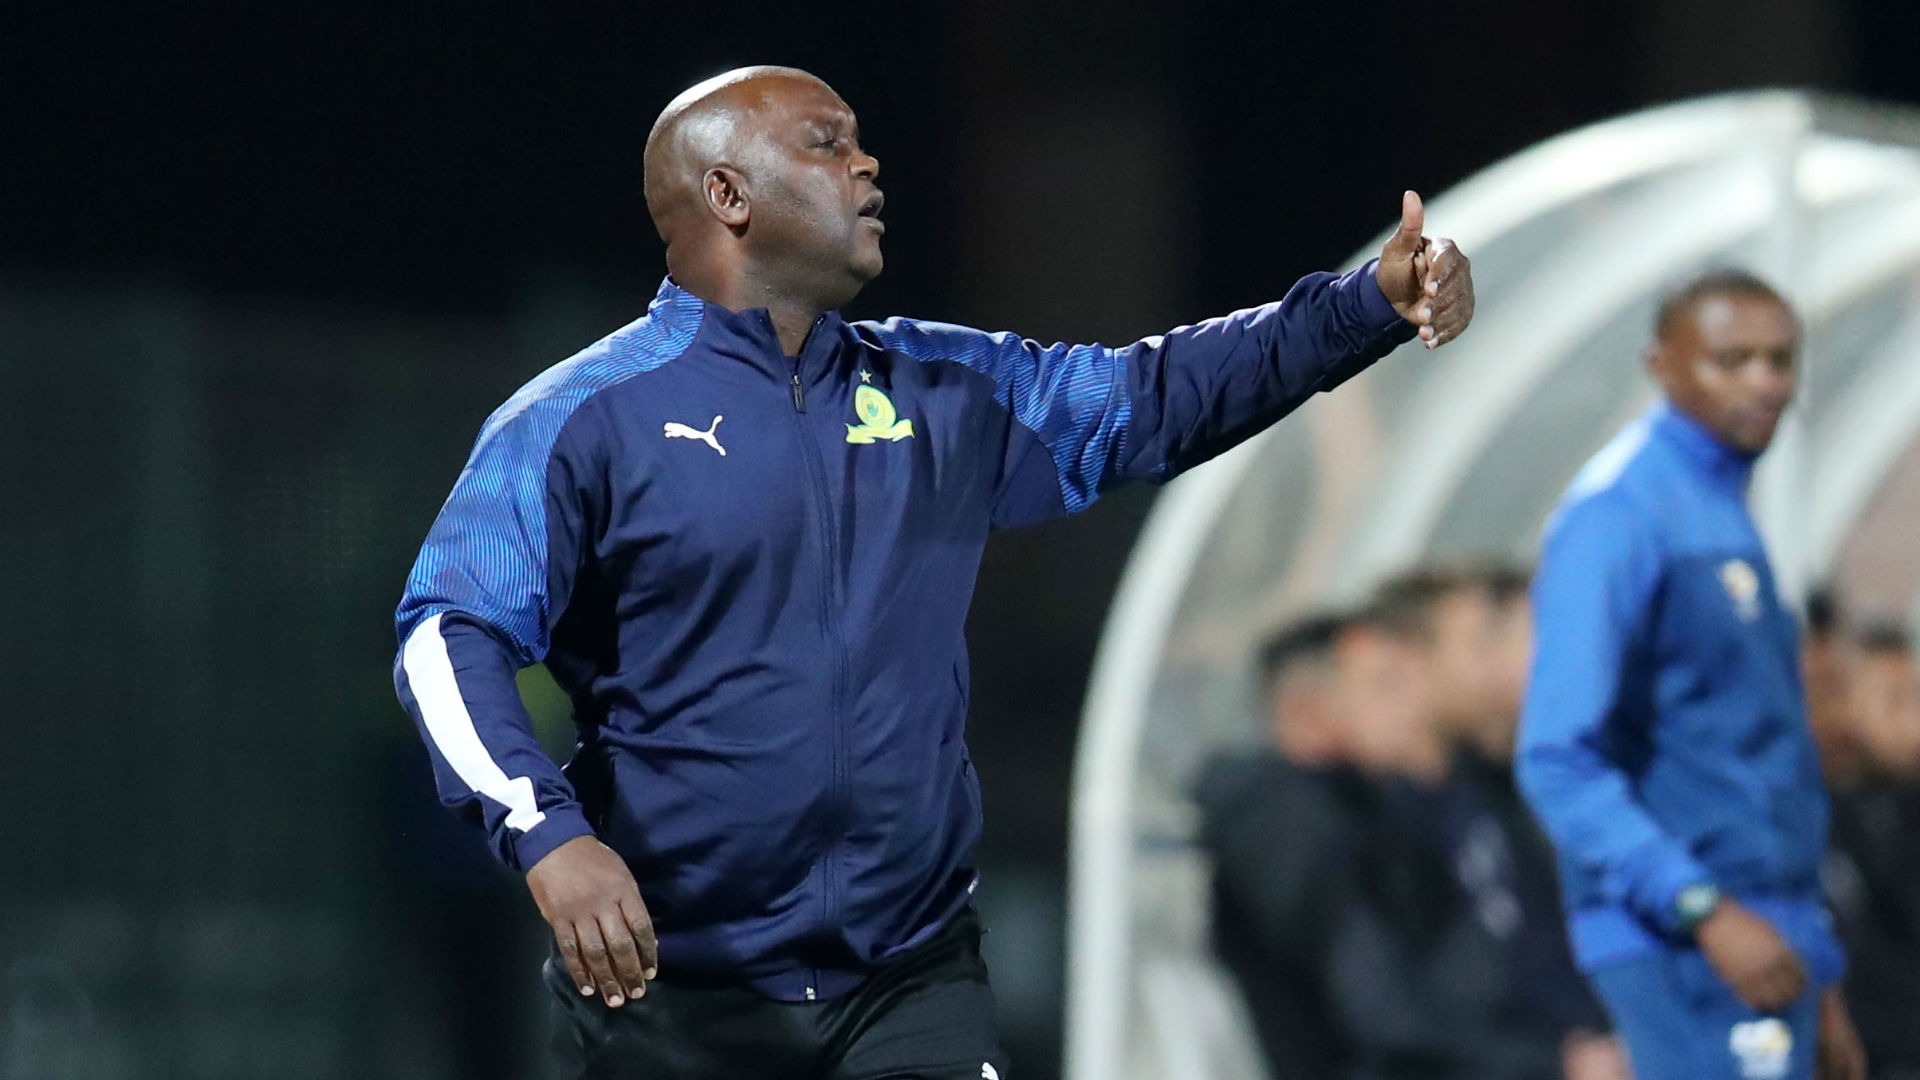 Mashego questions whether Mamelodi Sundowns will achieve as much without Mosimane